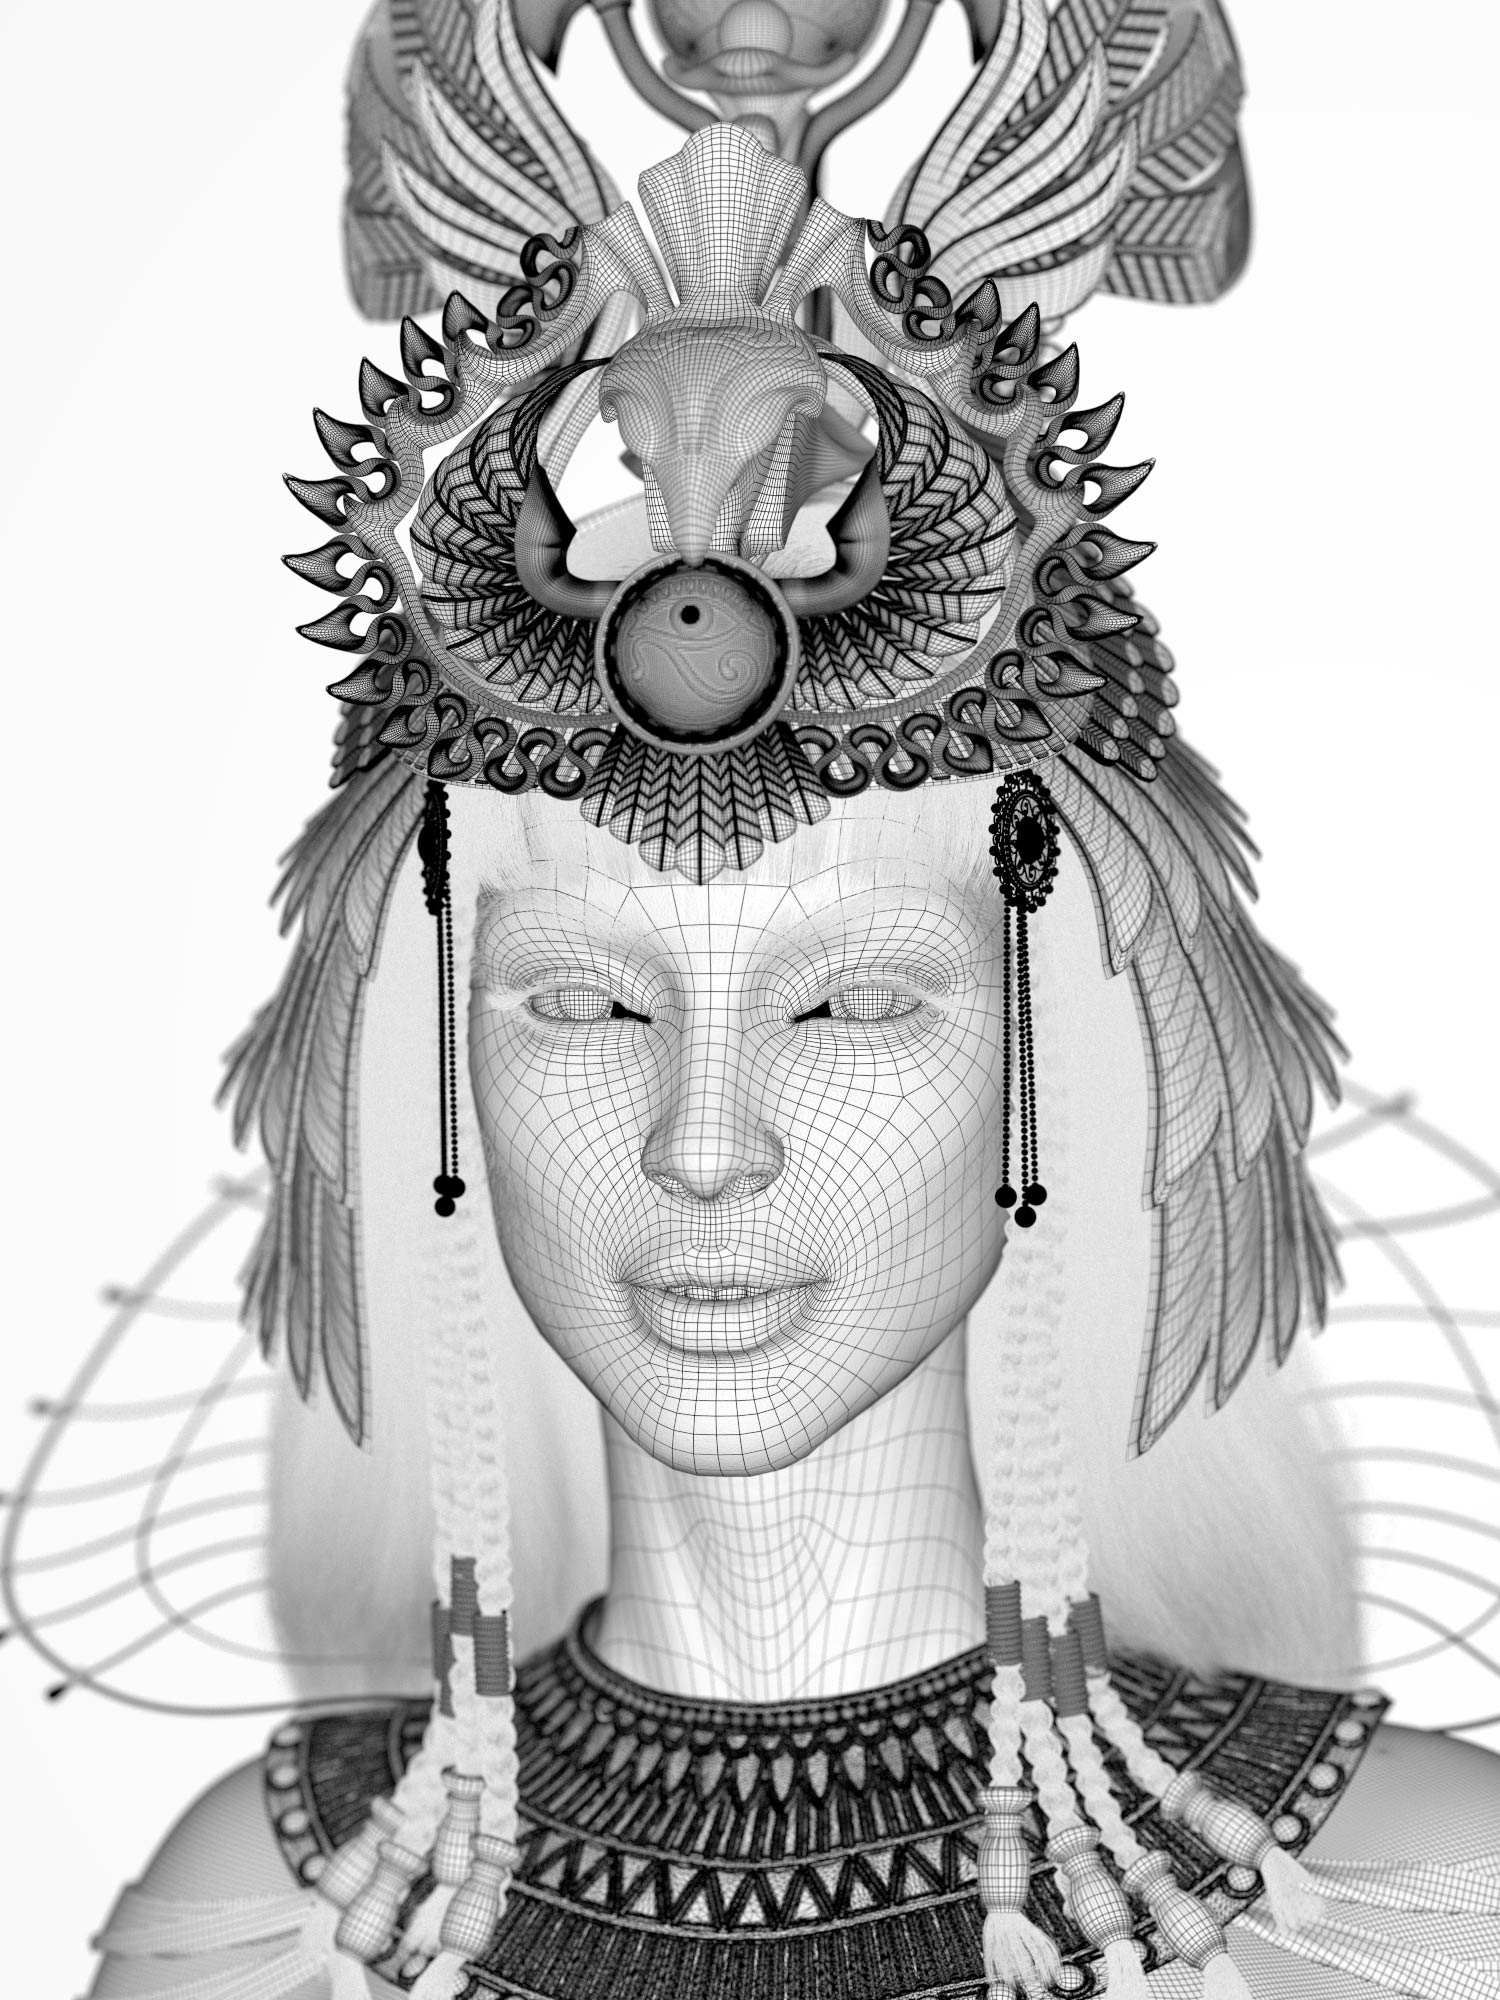 cleopatra_Nofretete_CG_character_wireframe_front Egyptian queen 3D model